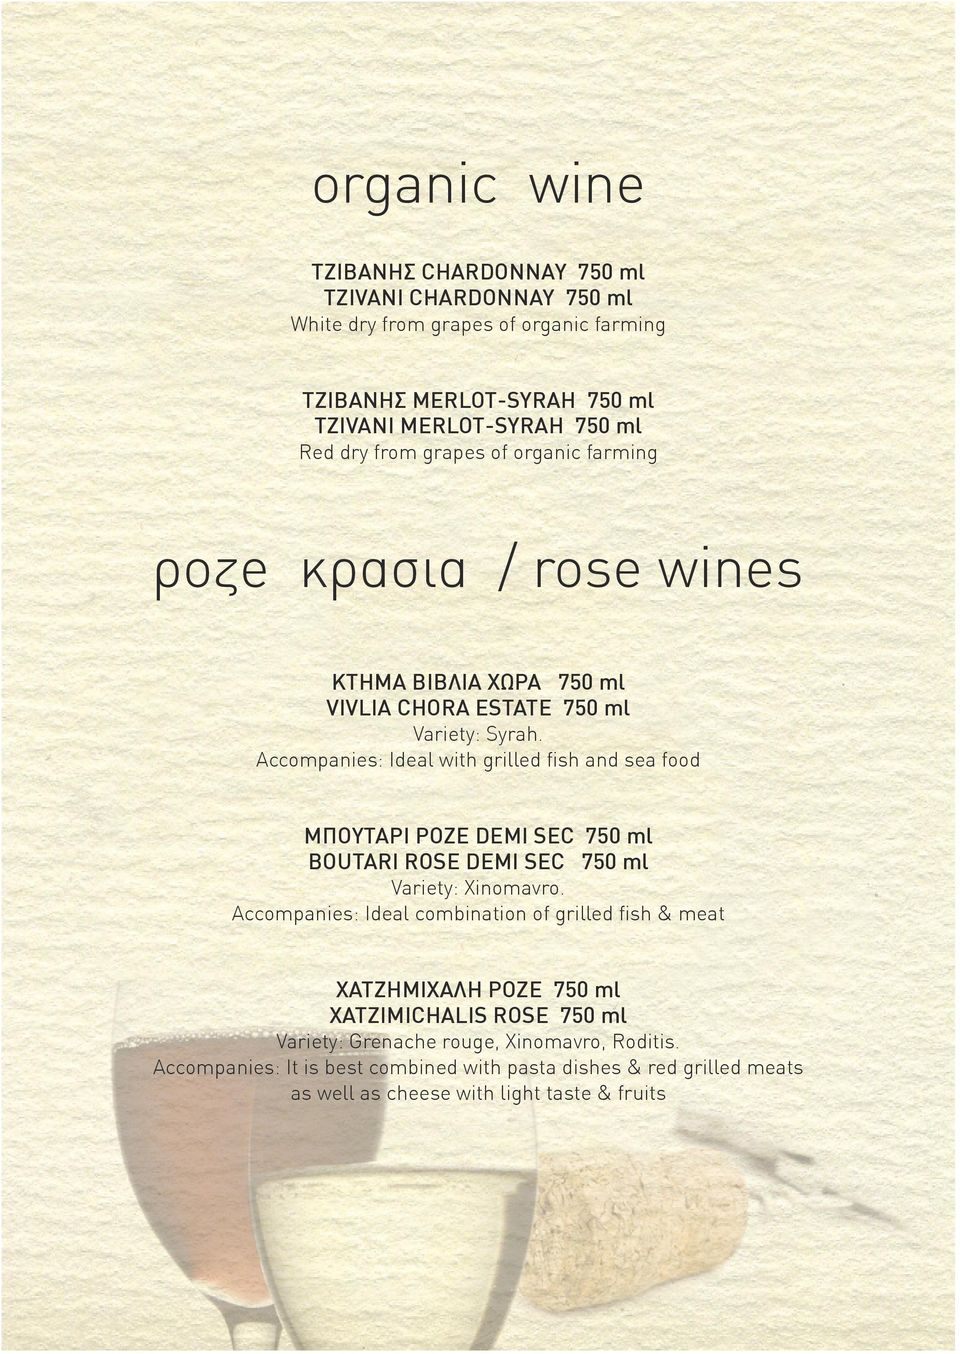 Accompanies: Ideal with grilled fish and sea food ΜΠΟΥΤΑΡΙ ΡOZE DEMI SEC 750 ml BOUTARI ROSE DEMI SEC 750 ml Variety: Xinomavro.